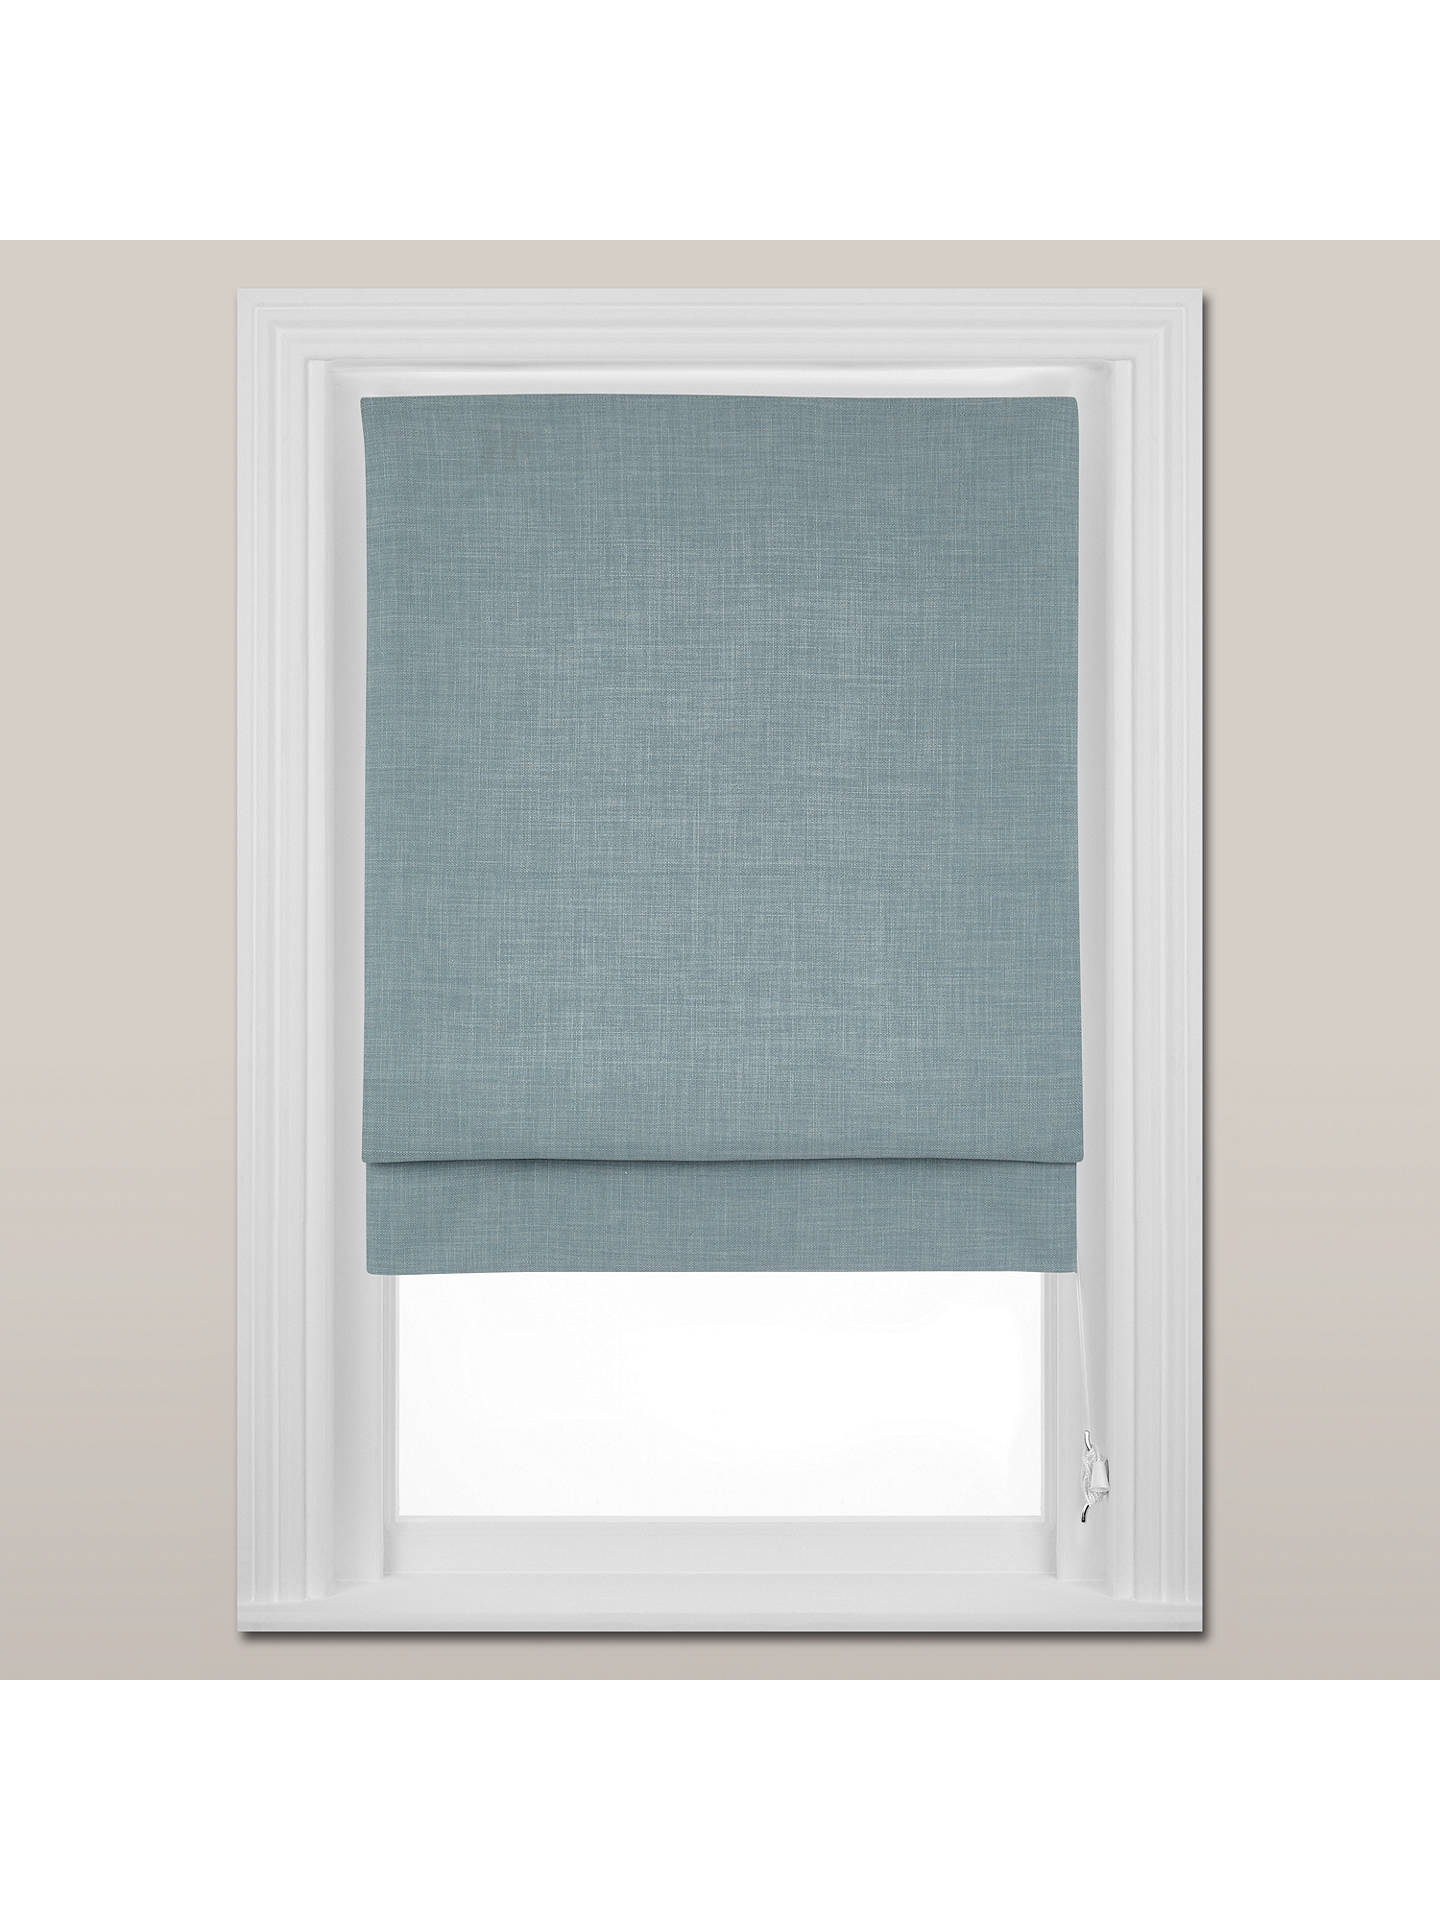 BuyJohn Lewis & Partners Country Blackout Roman Blind, Duck Egg, W150cm Online at johnlewis.com